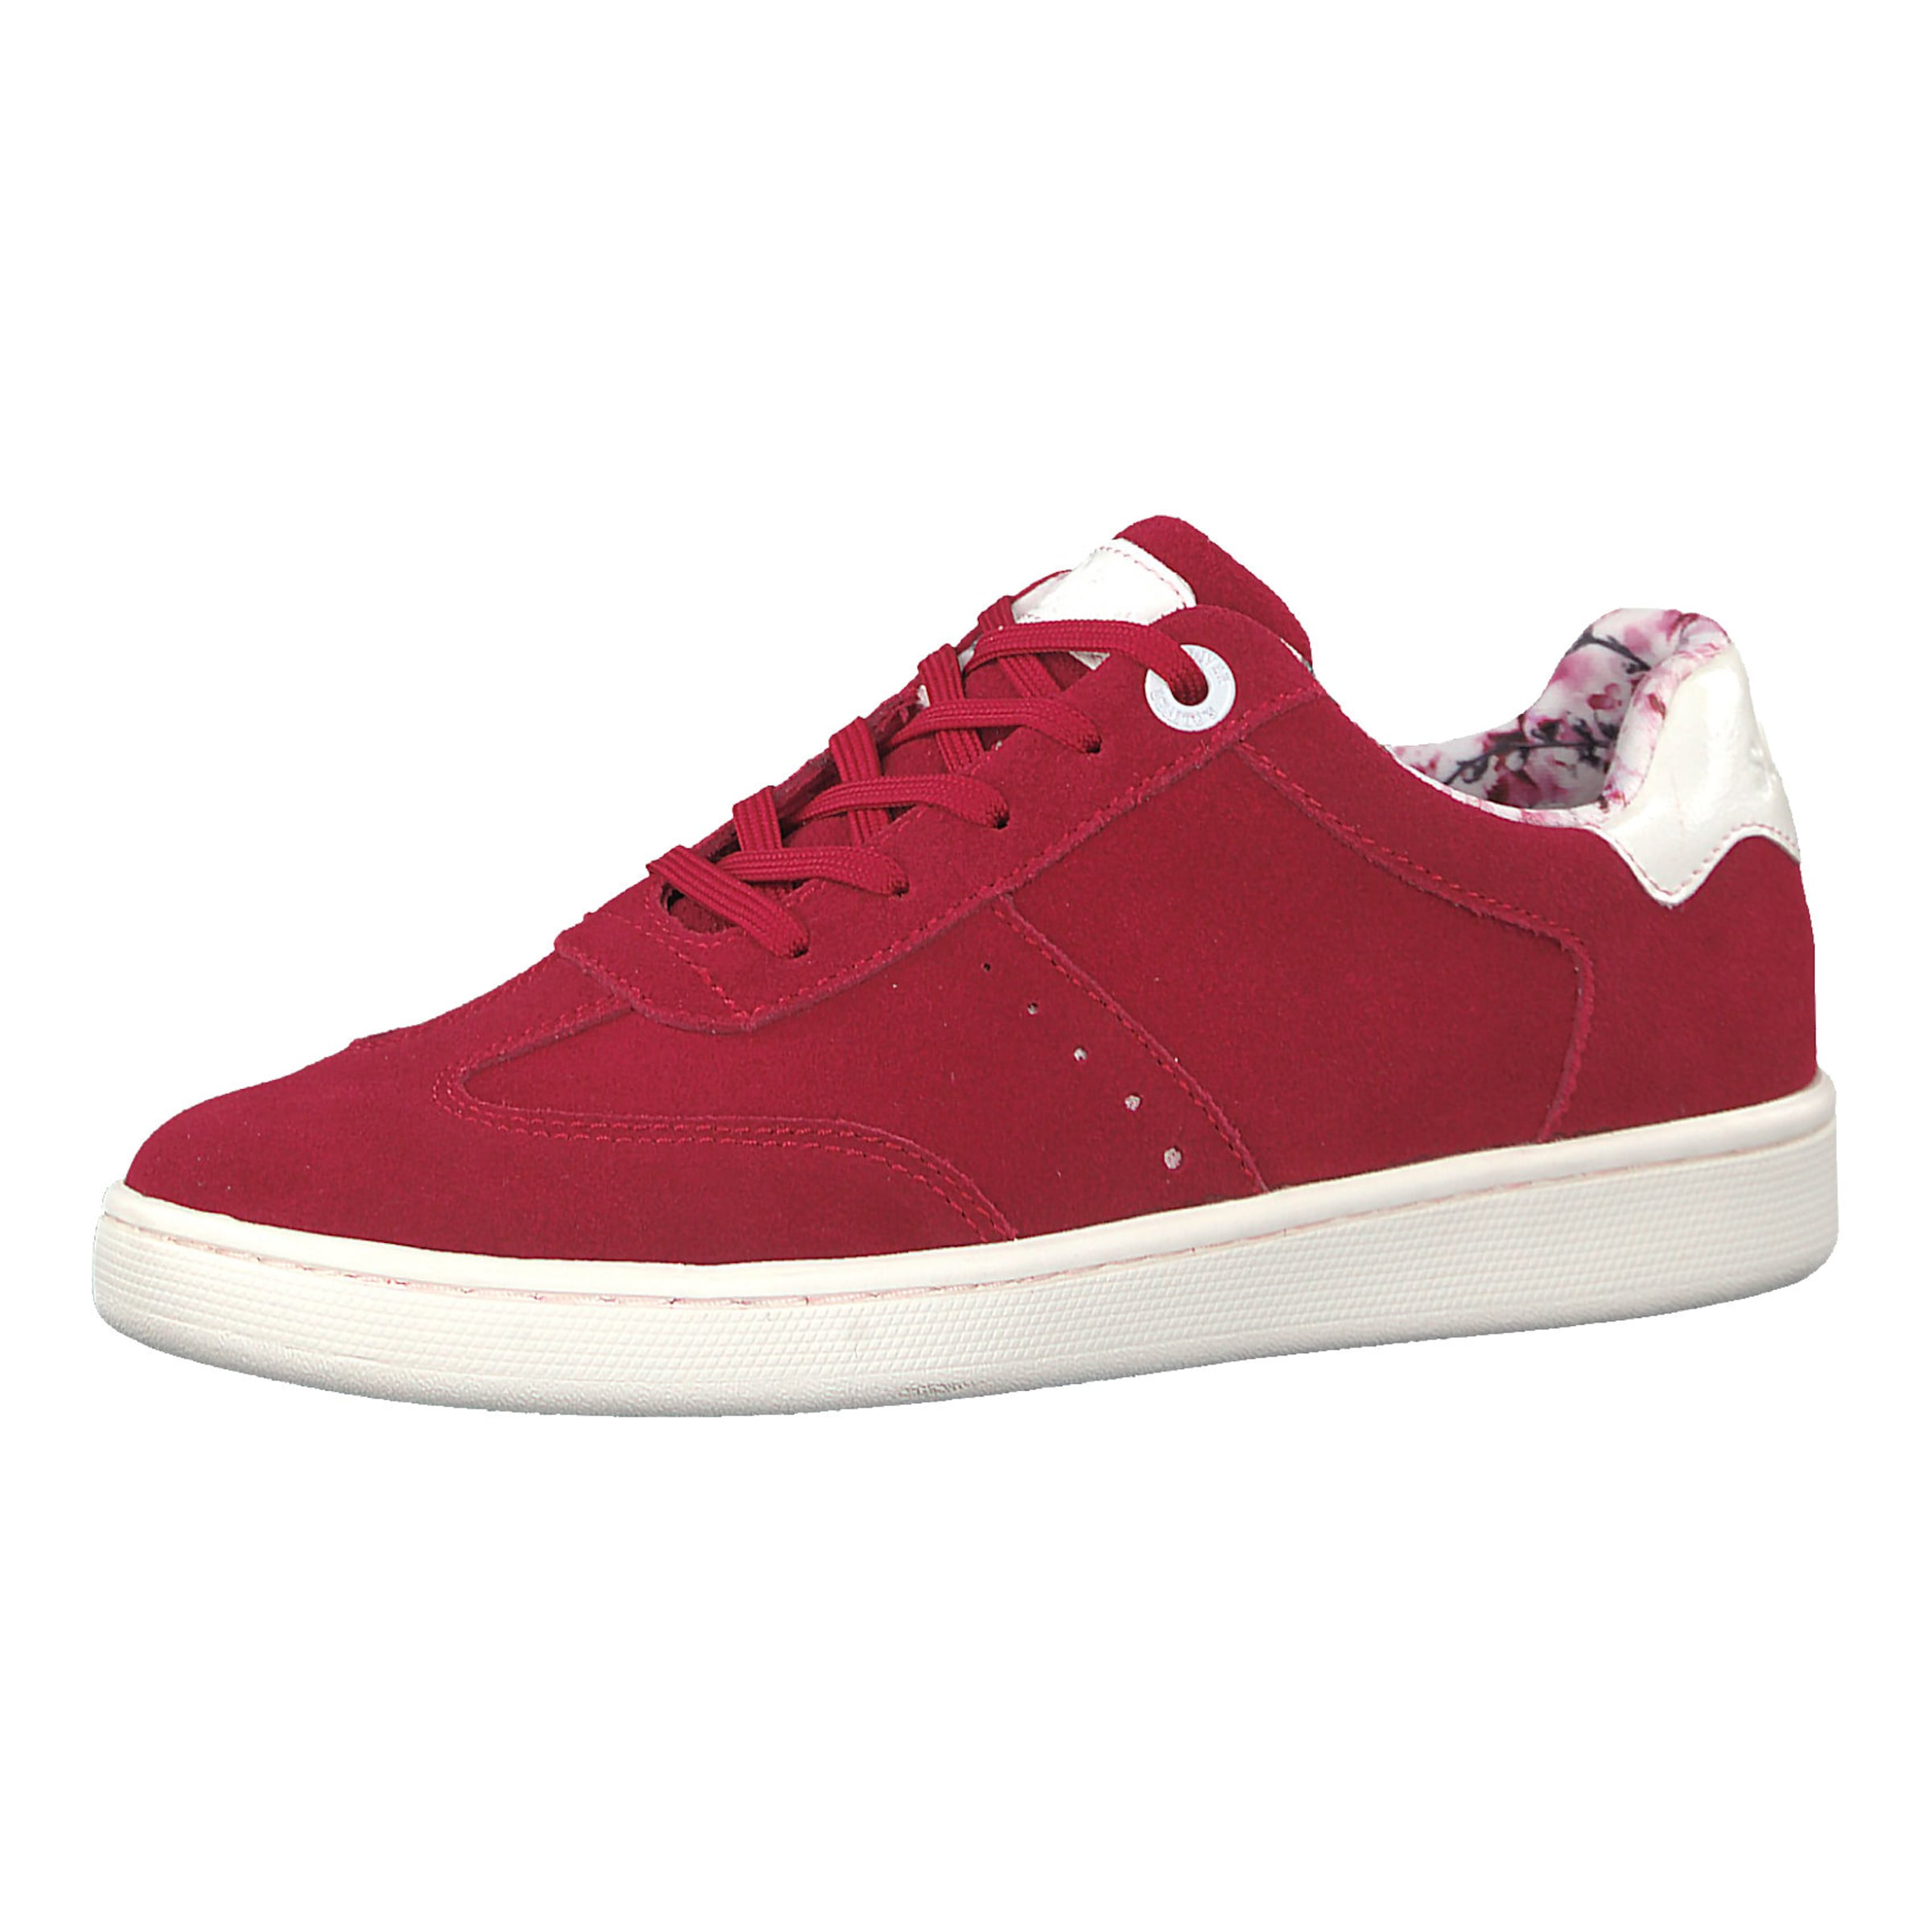 s.Oliver RED LABEL Sneakers Low Hohe Qualität